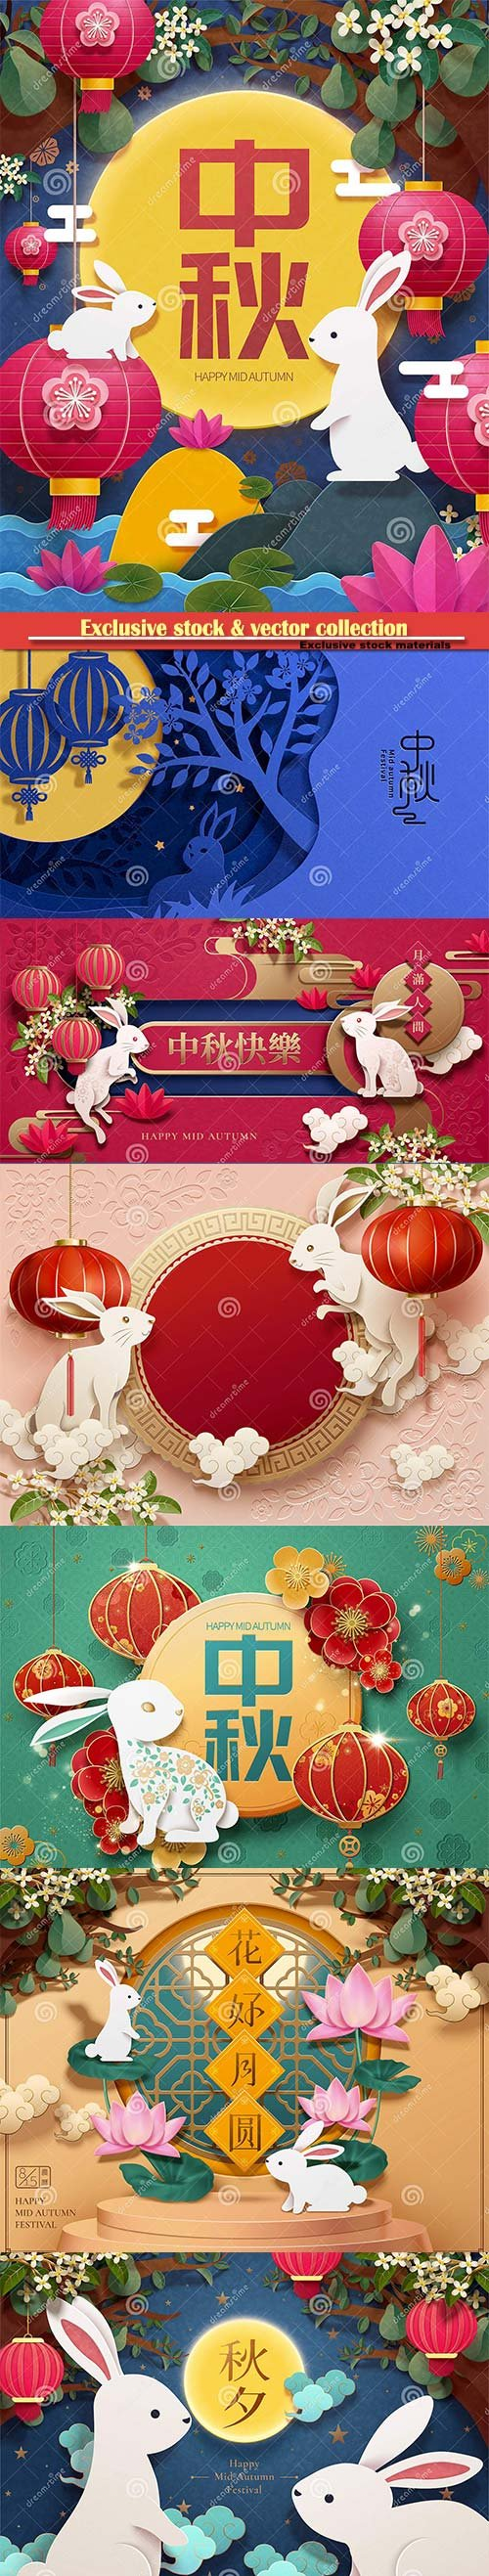 Mid autumn festival paper art design with rabbit, lanterns and the full moon decorations